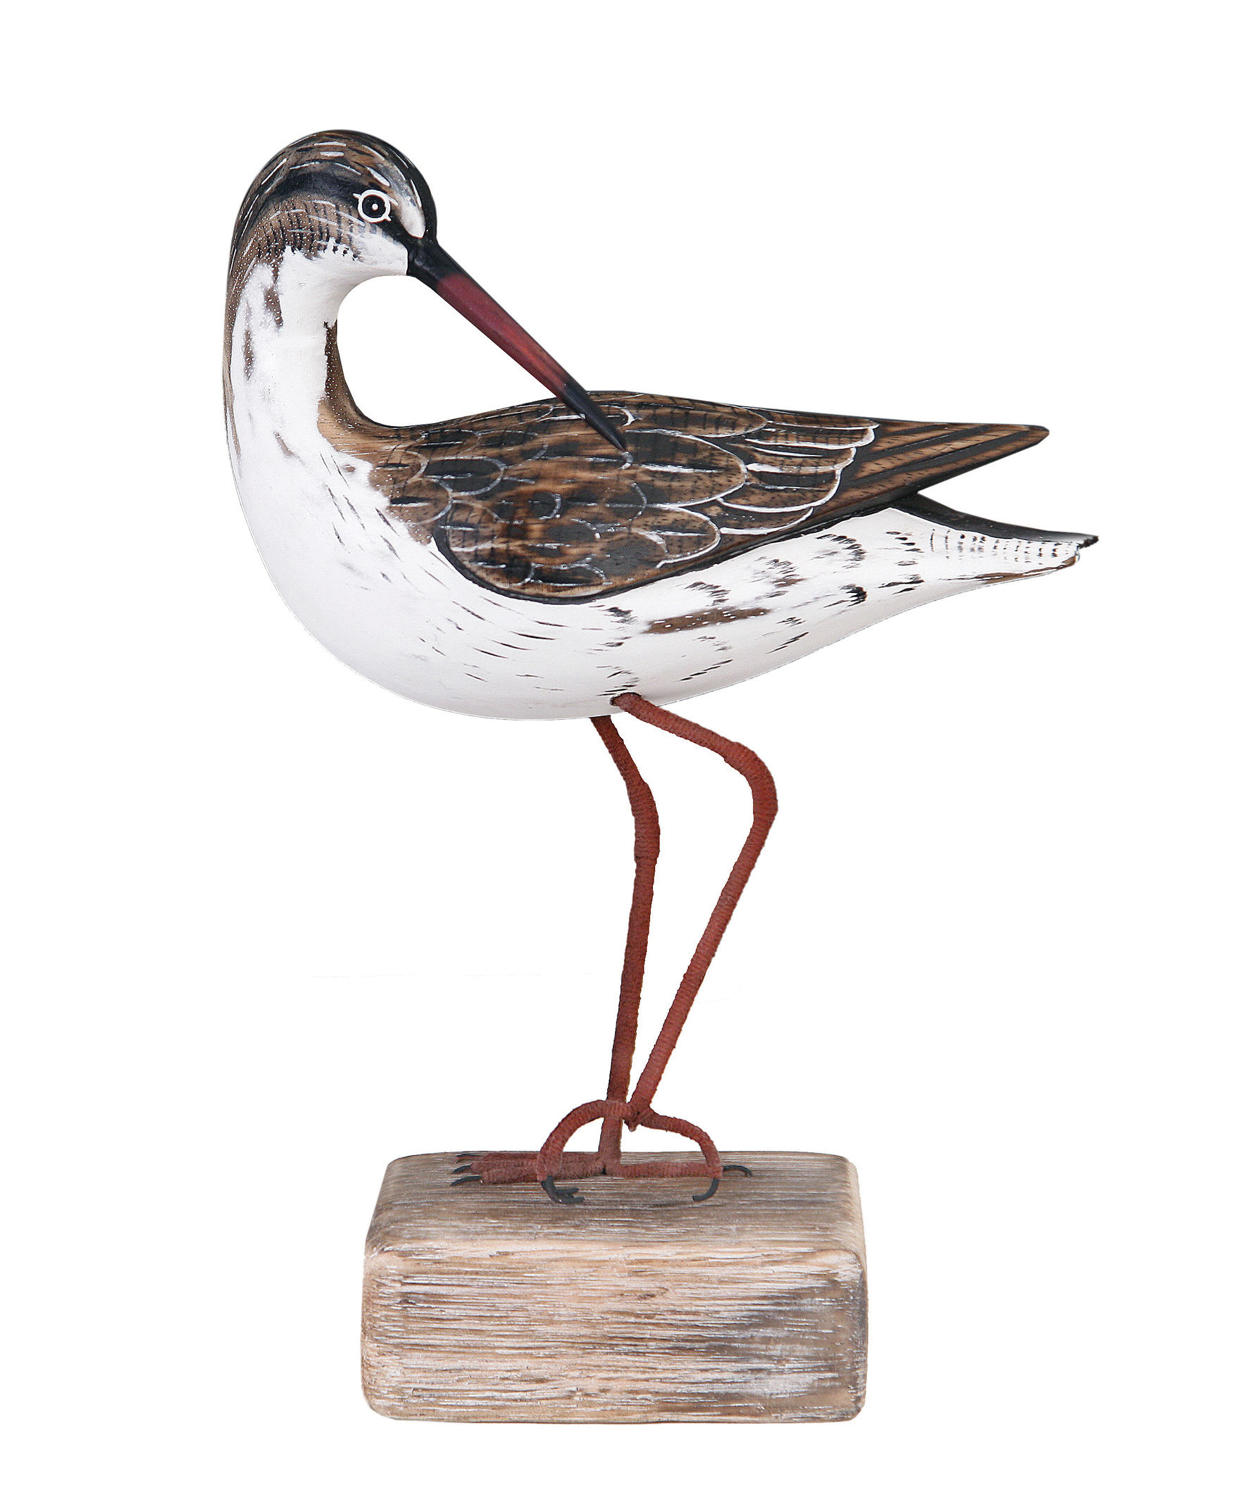 Redshank preening - Hand carved and painted